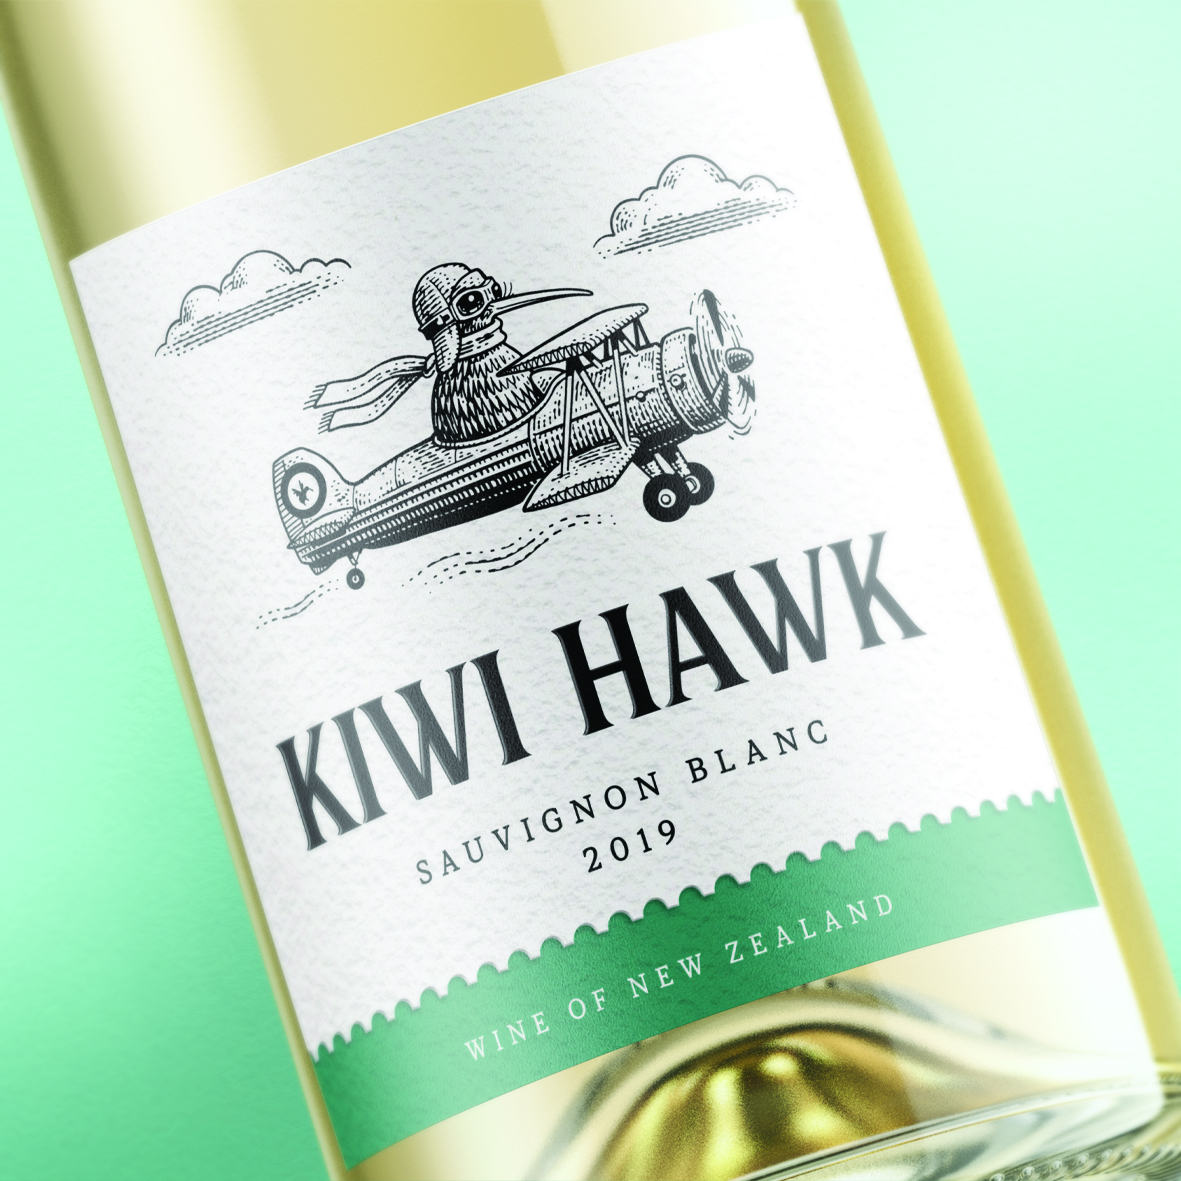 Kiwi Hawk Brand and Packaging